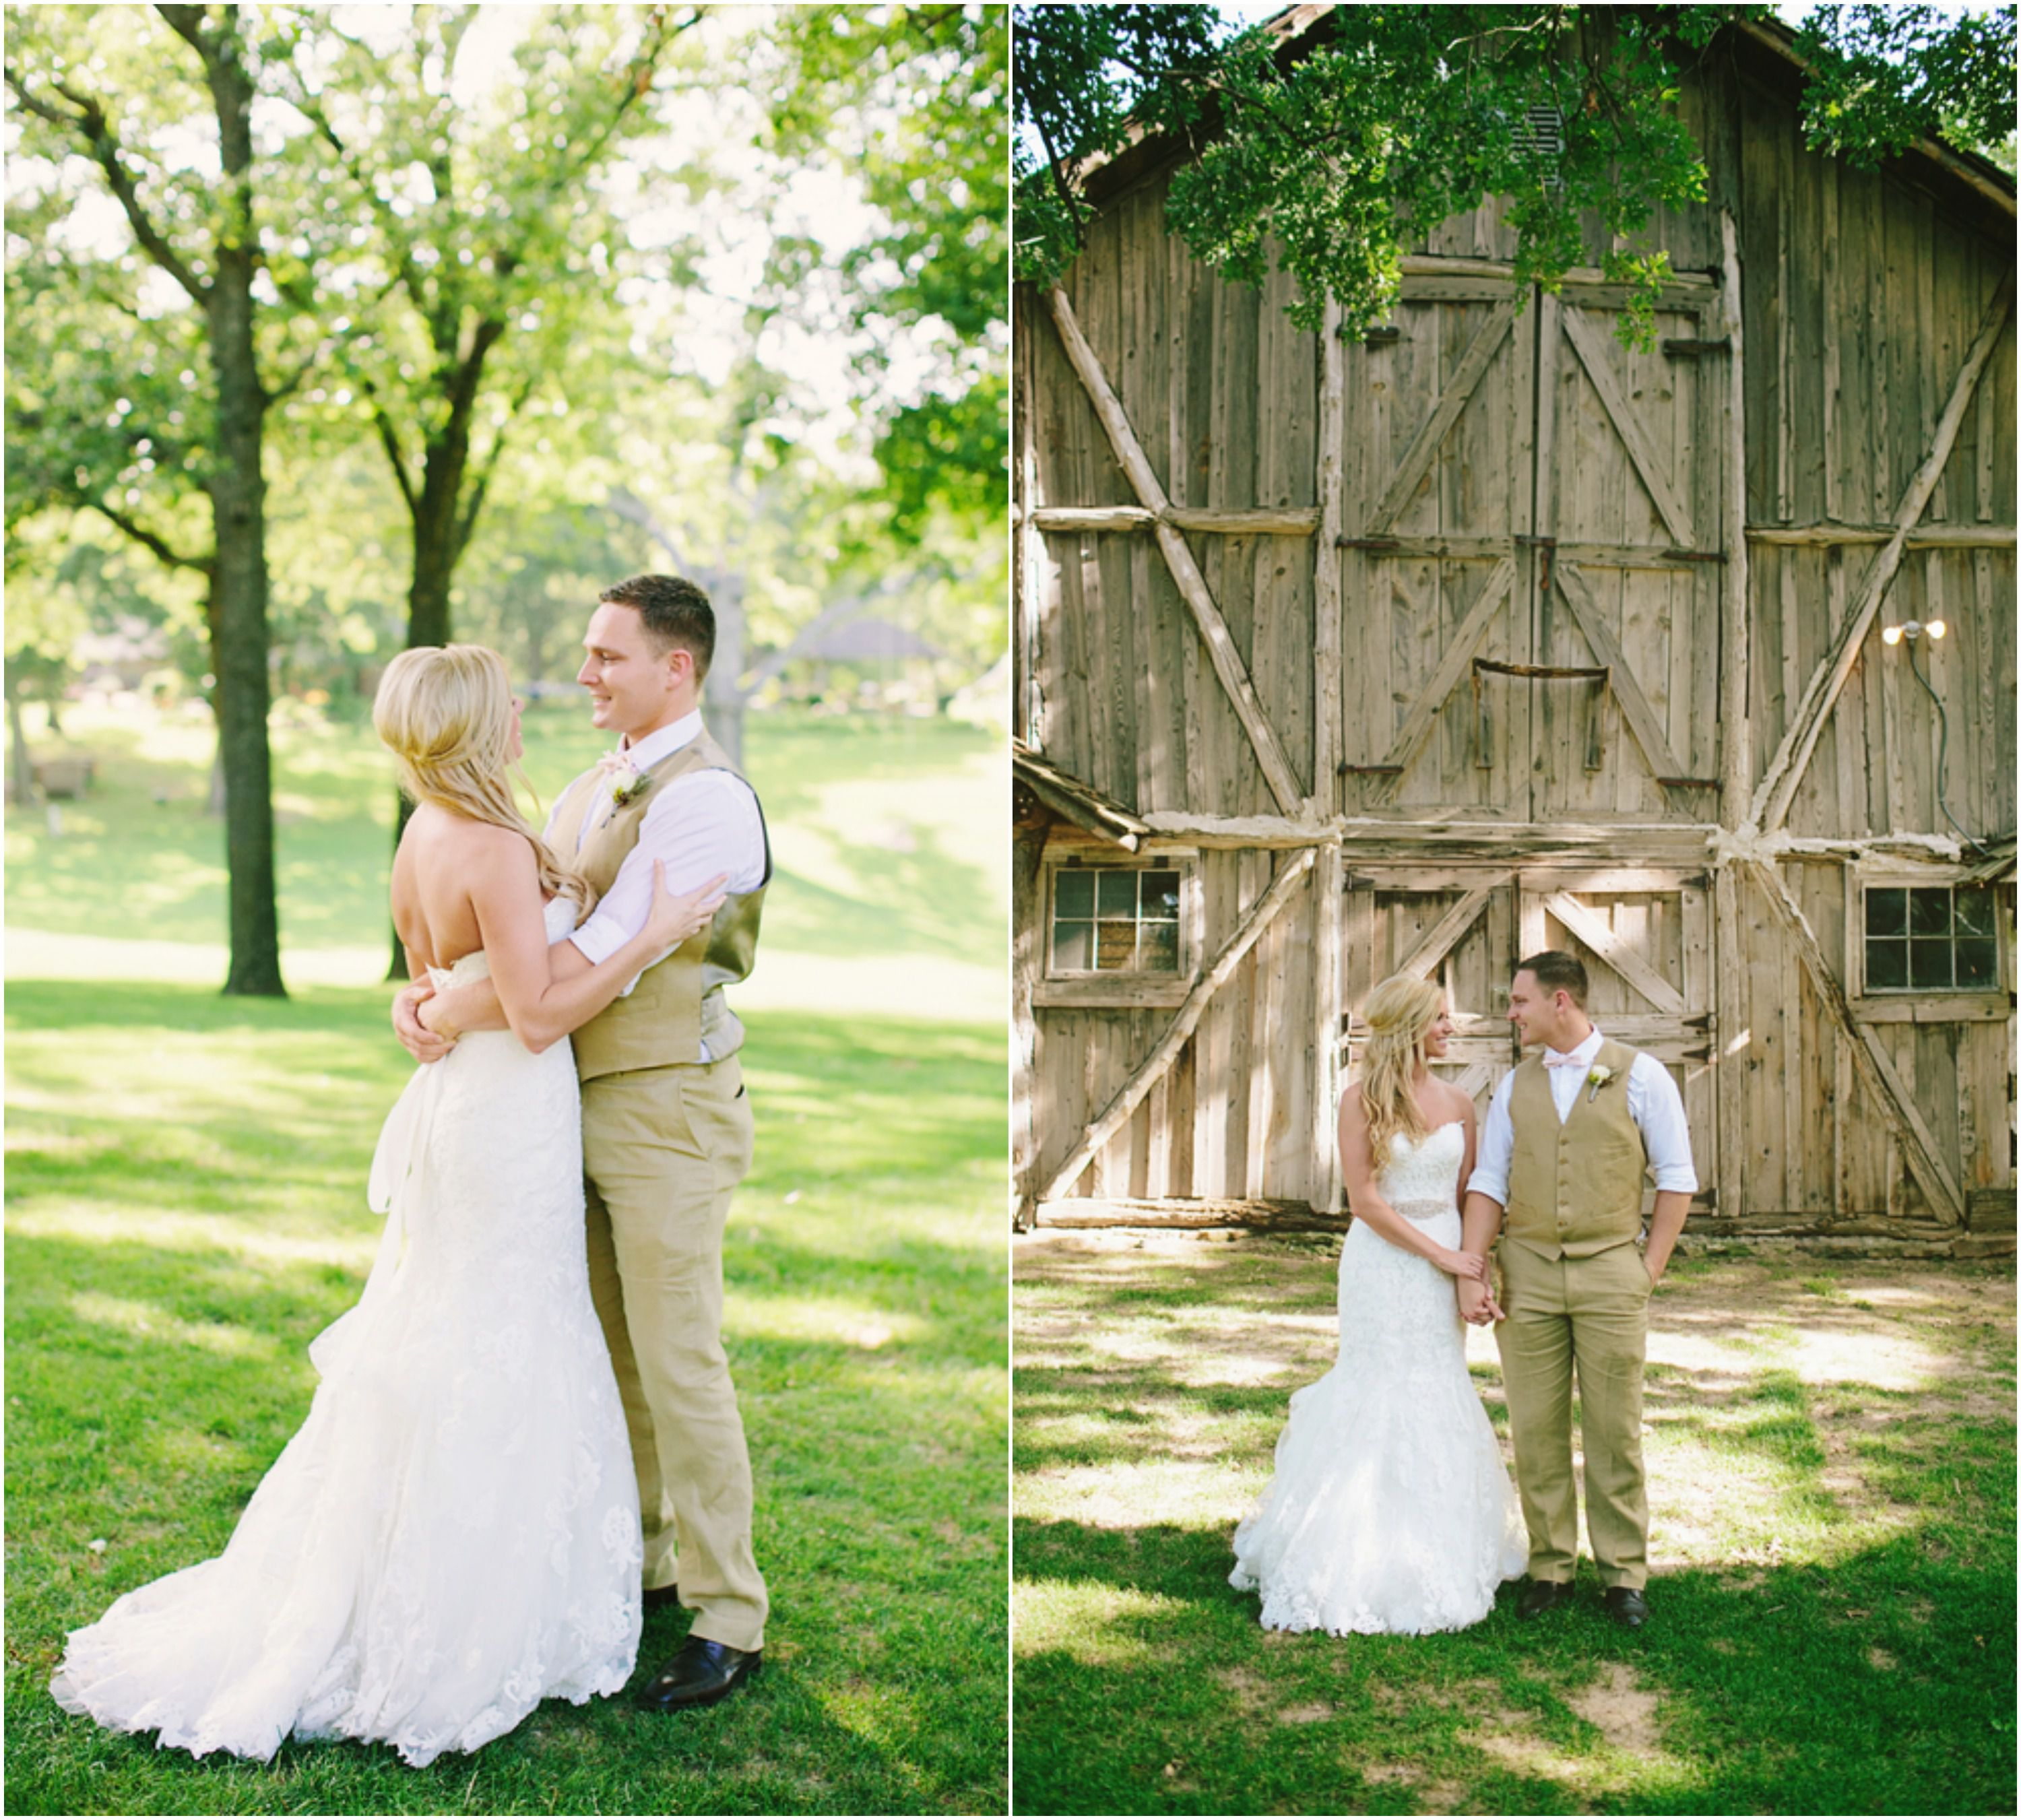 Southern Barn Wedding At Vive Le Ranch - Rustic Wedding Chic